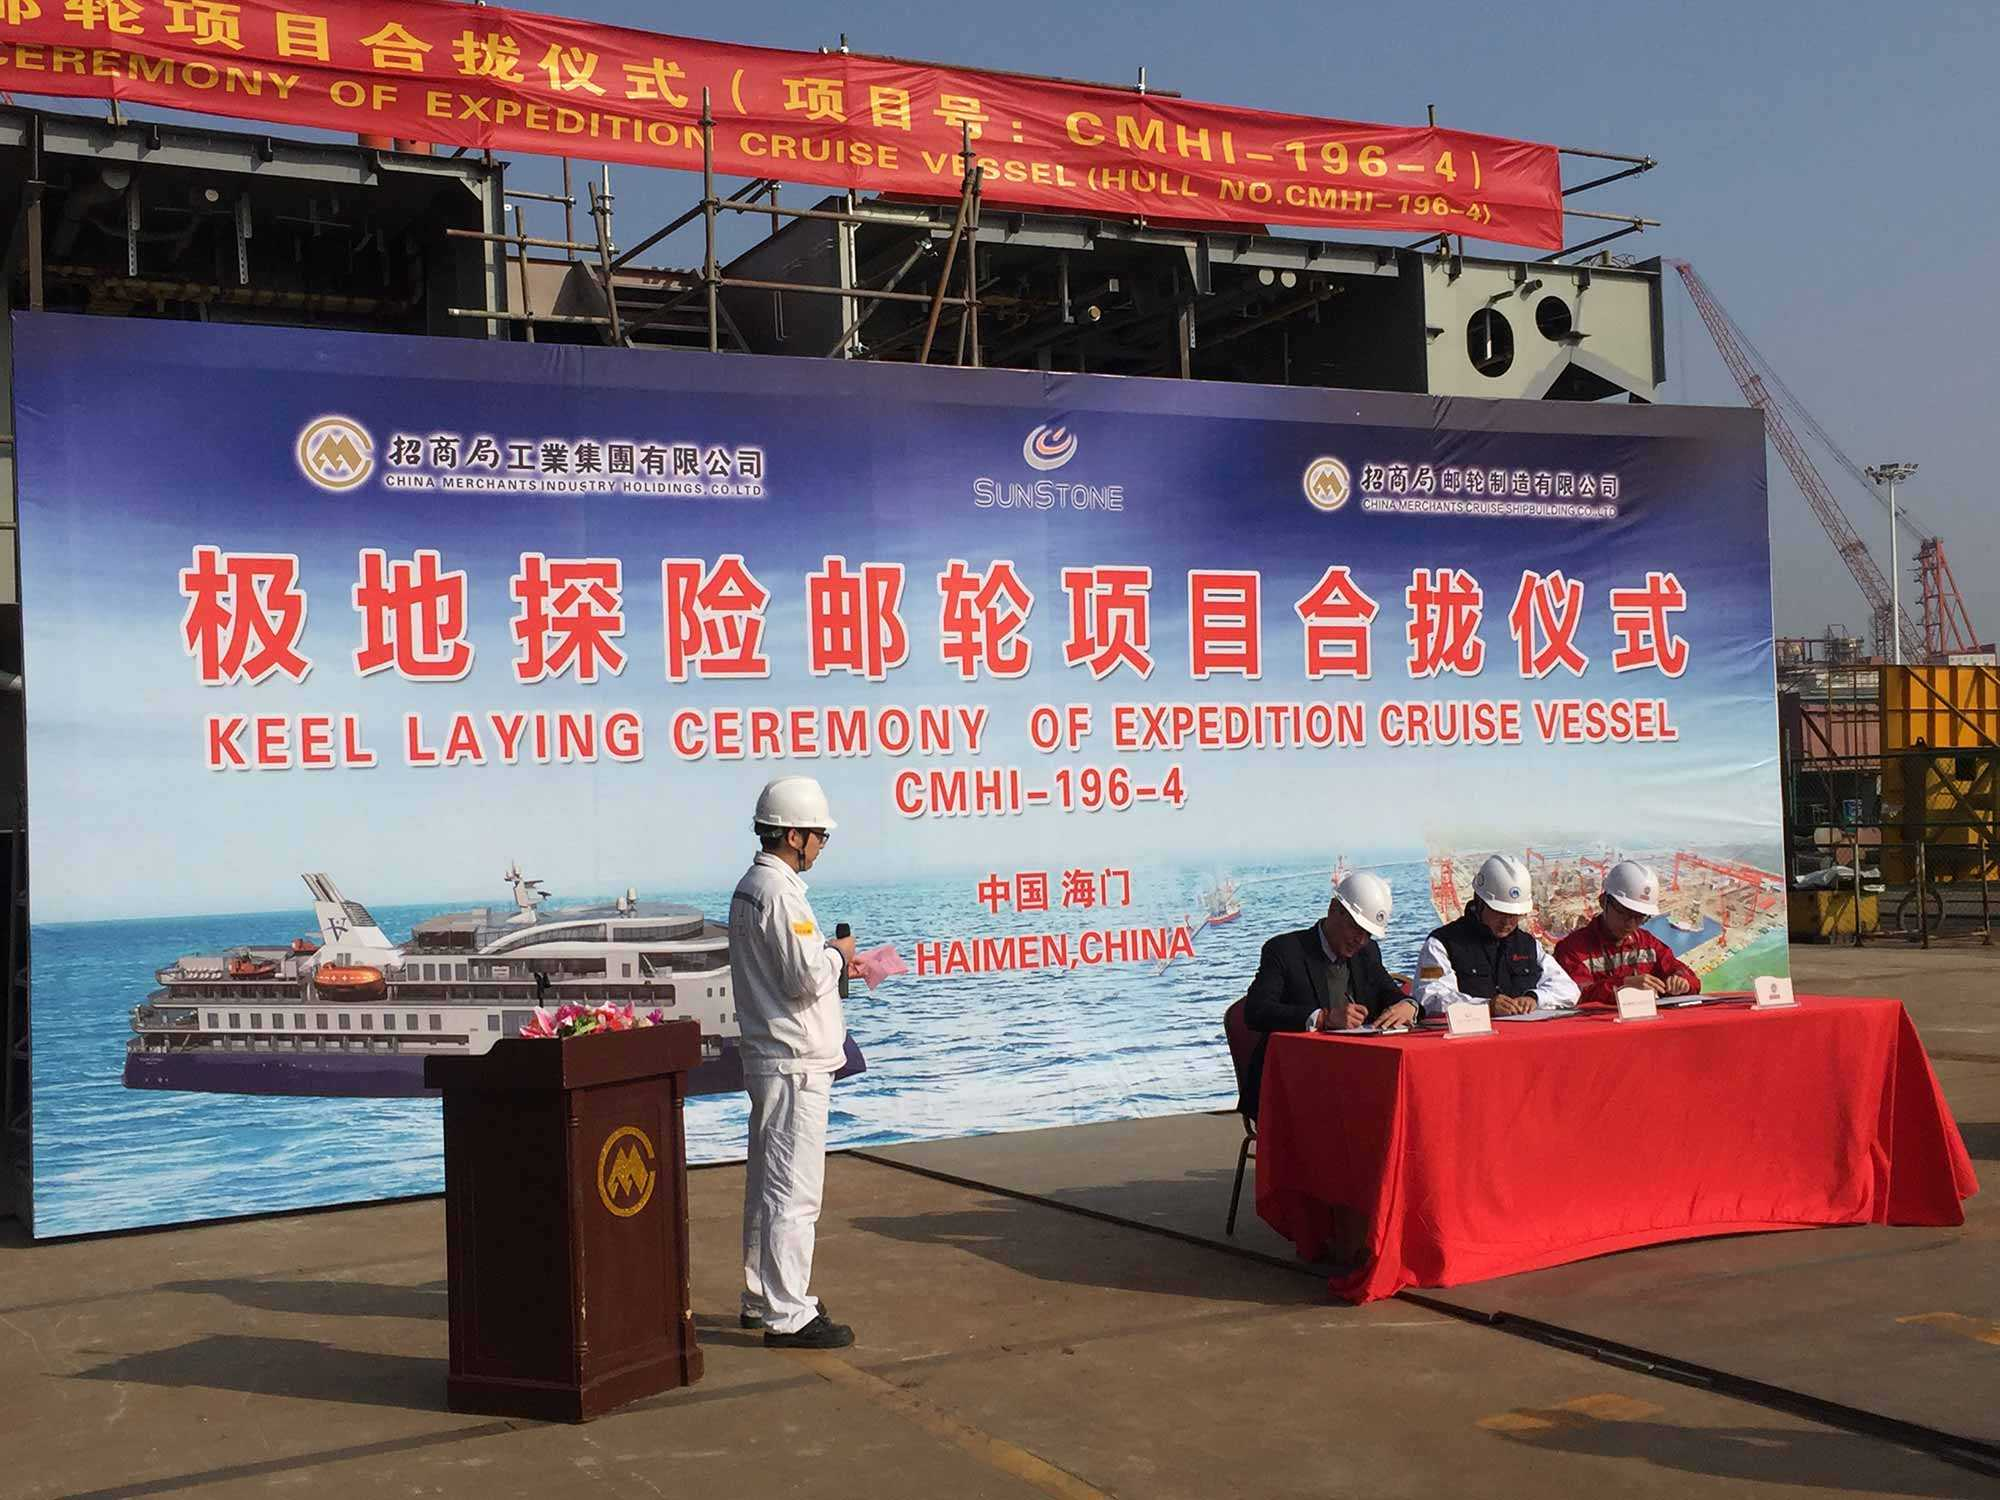 Signing-of-documents-at-the-Ocean-Explorer-keel-laying-ceremony-at-CMHI.jpg